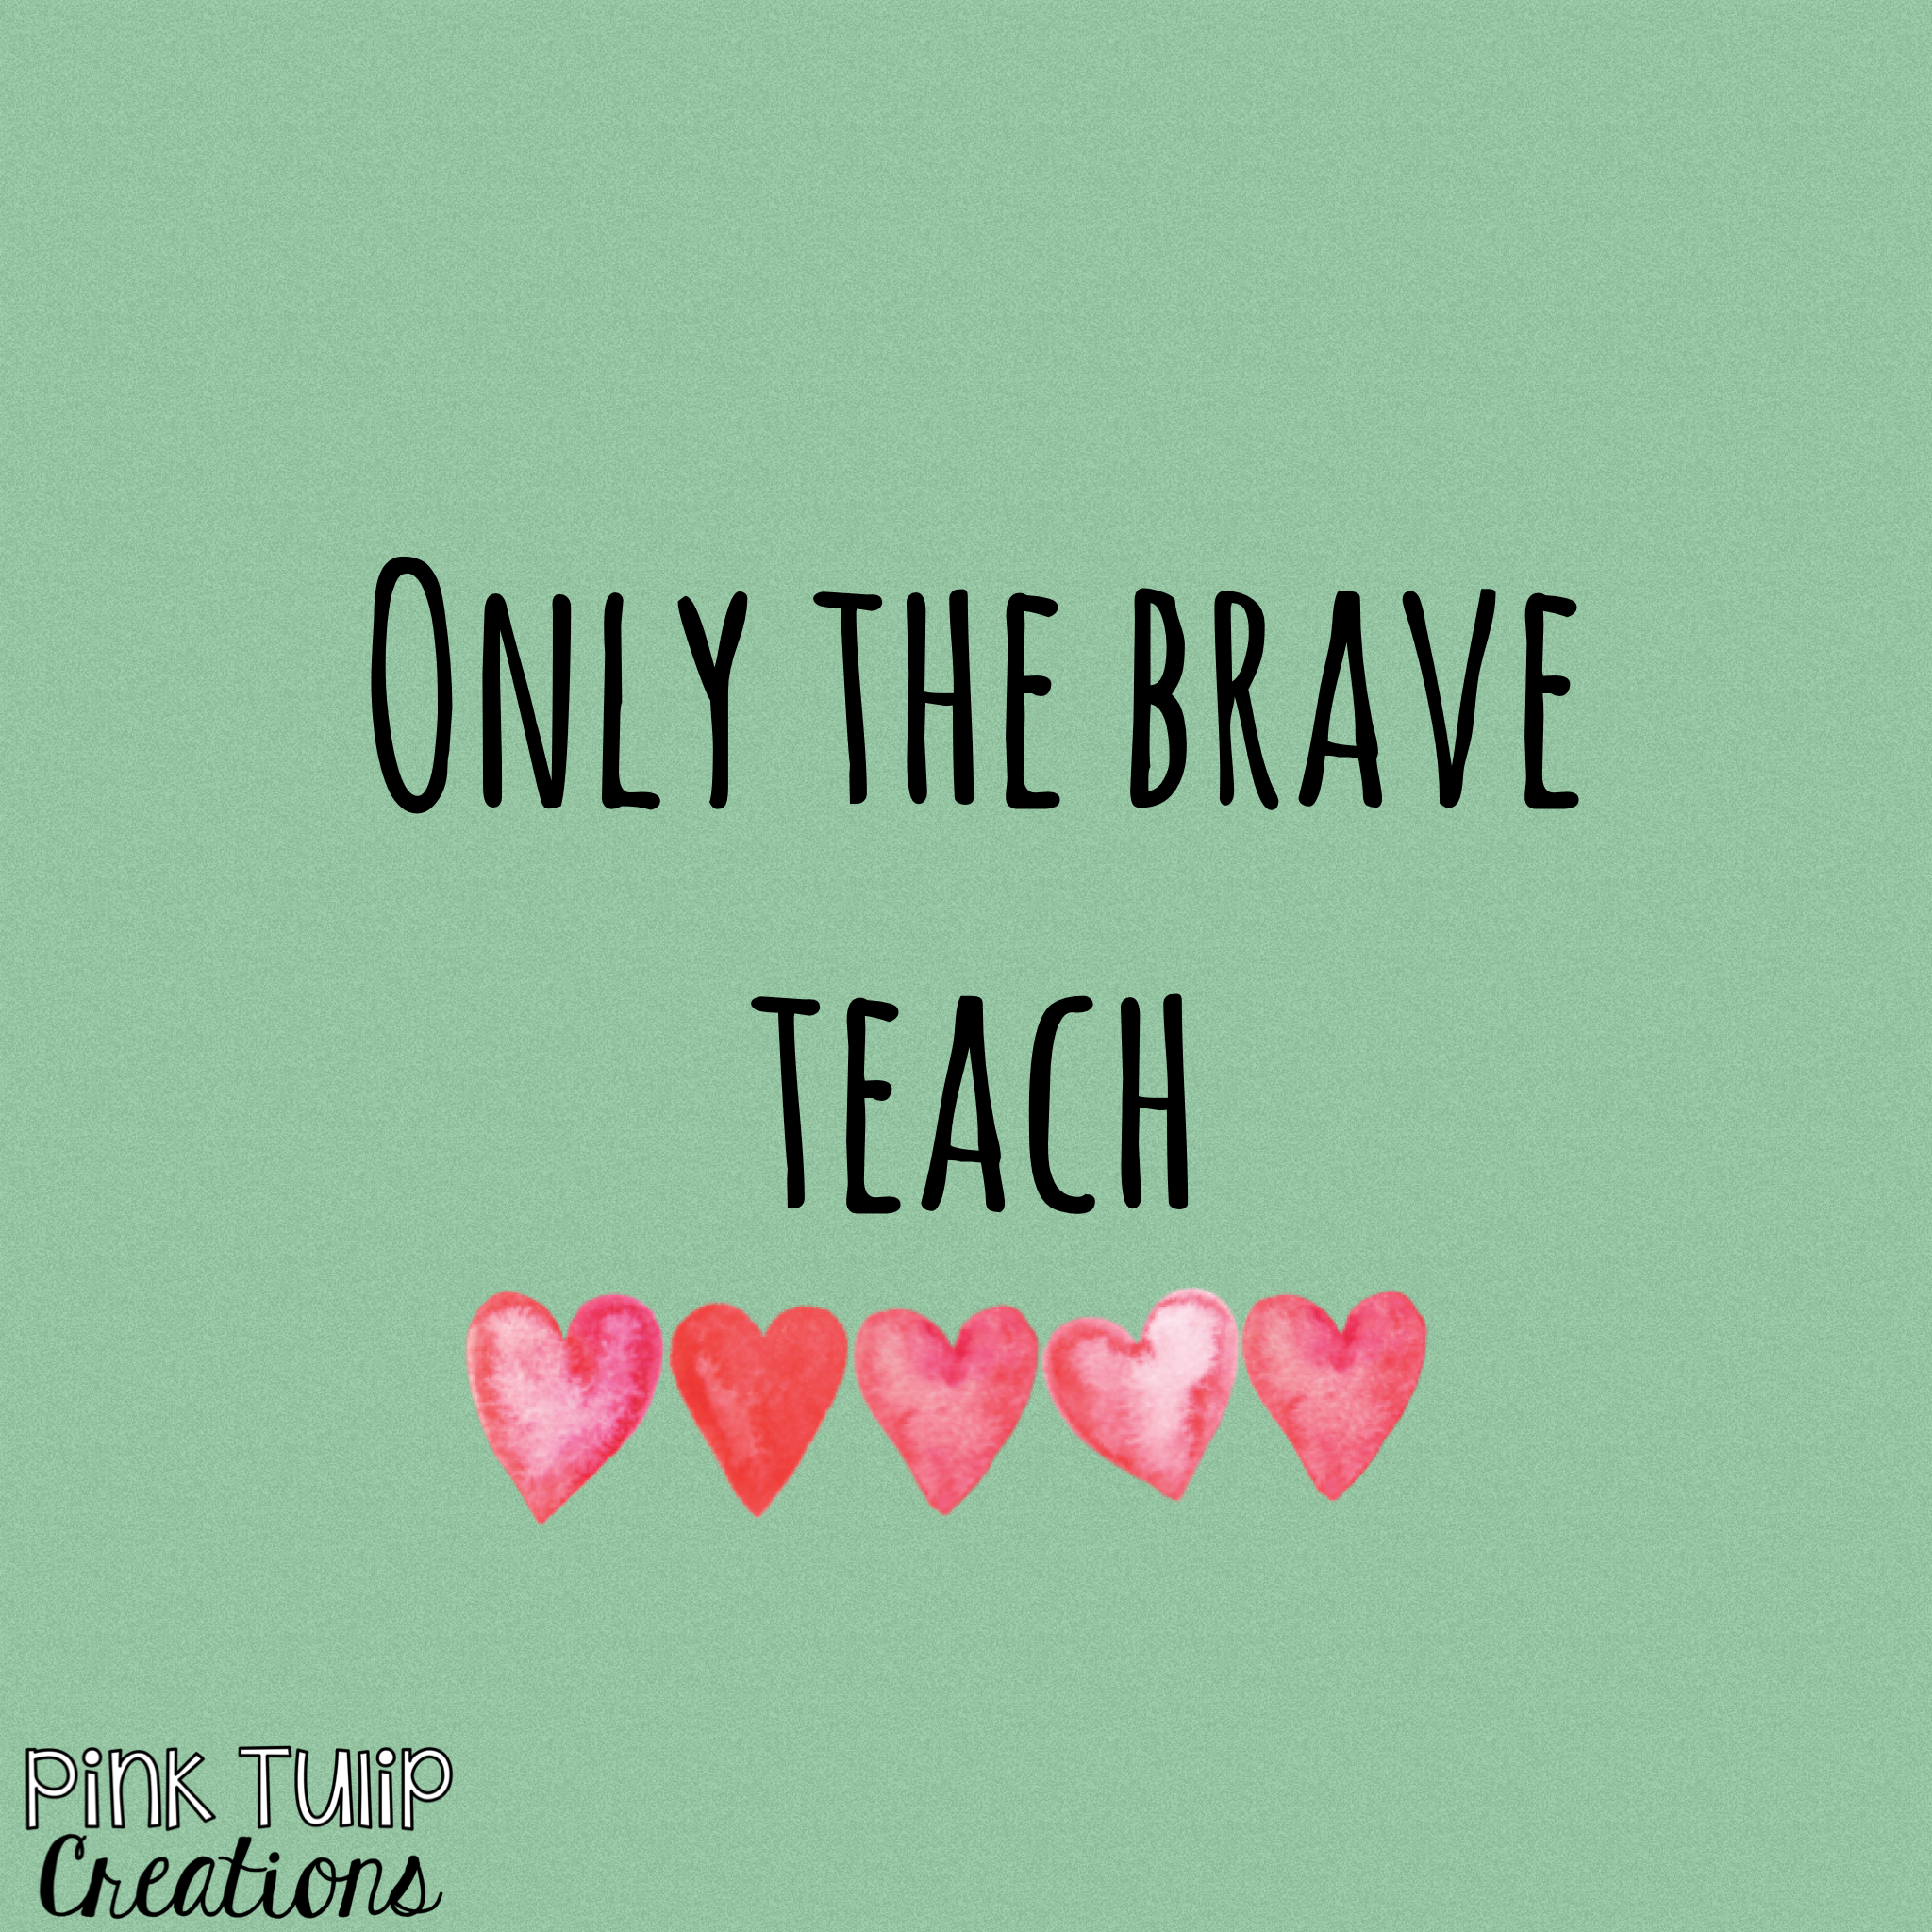 Teaching Quotes New Only The Brave Teachteaching Quotes Educational Education